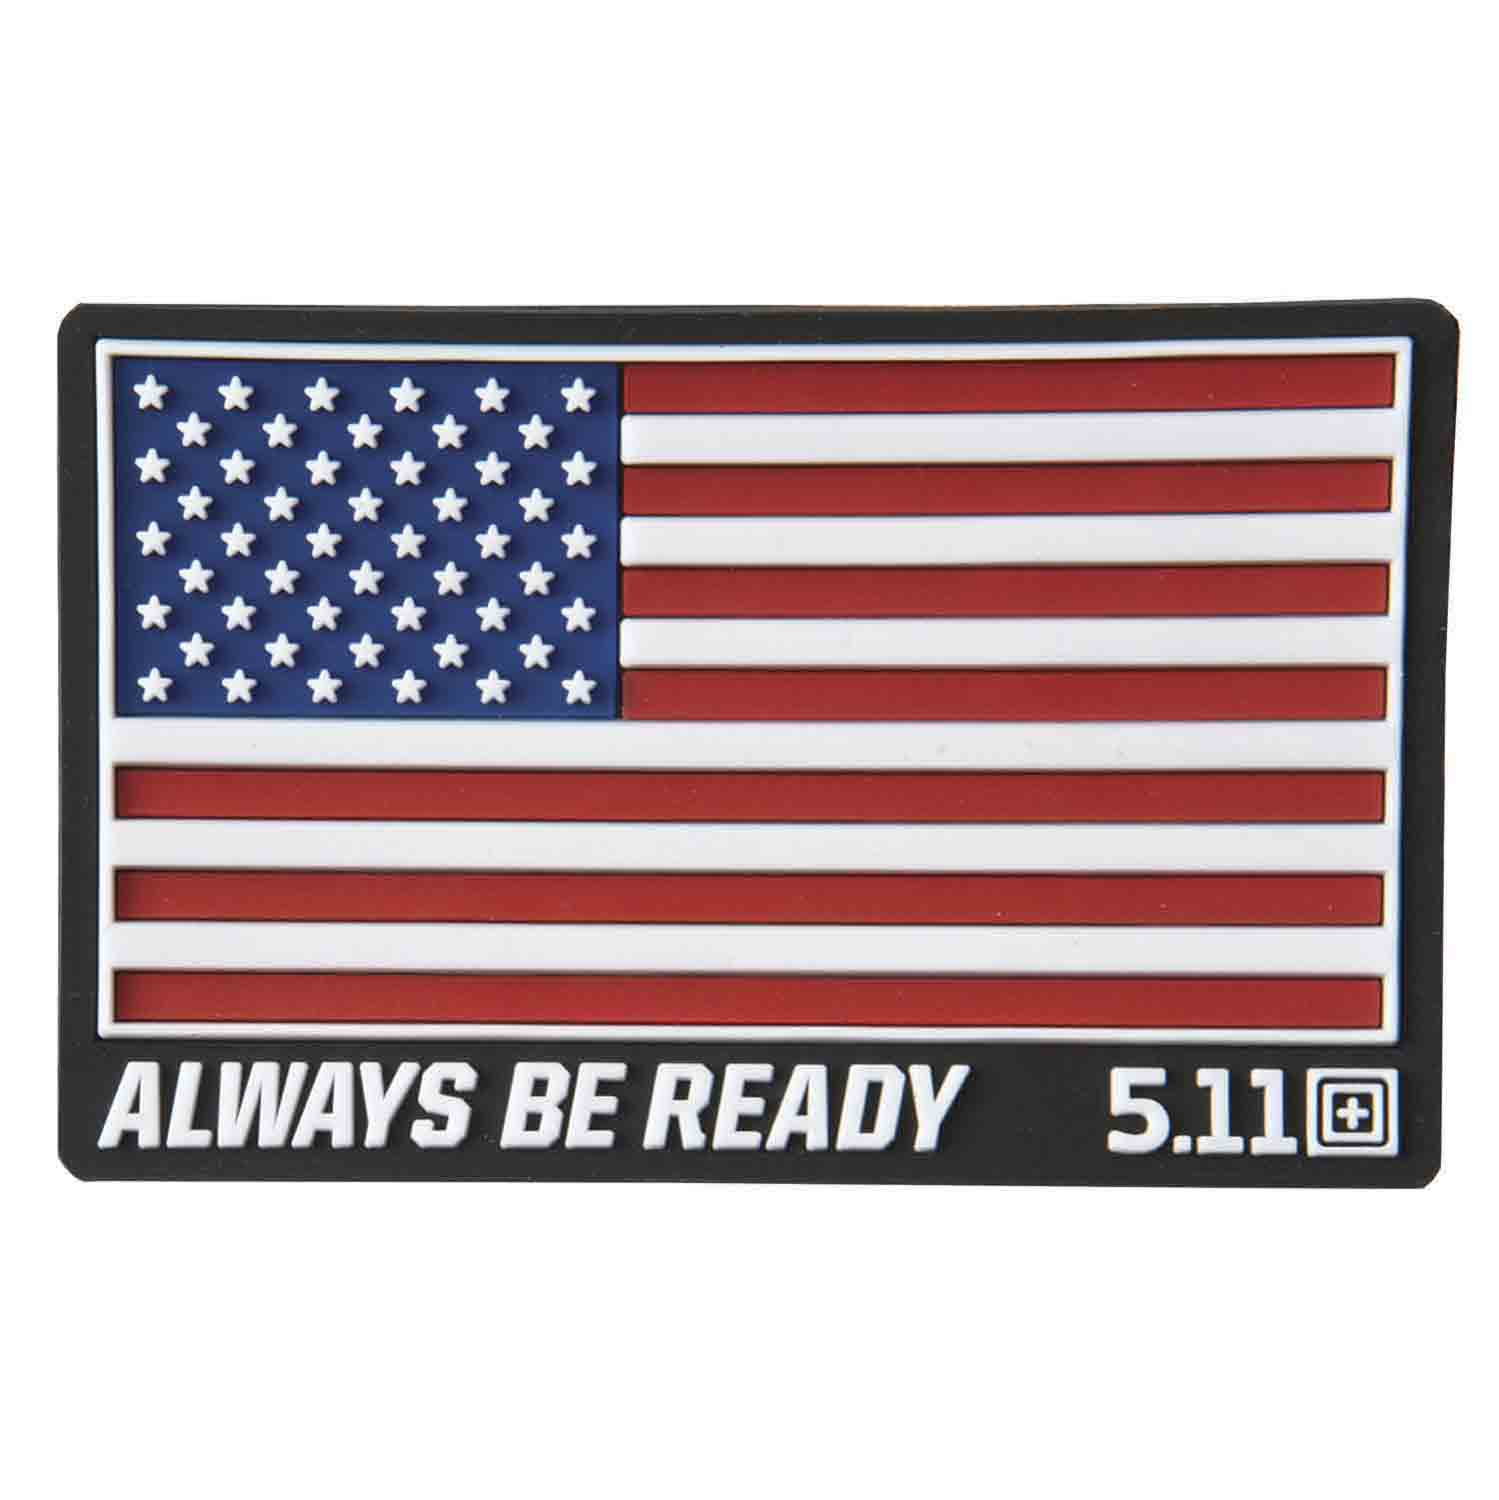 5.11 Tactical USA Morale Patch